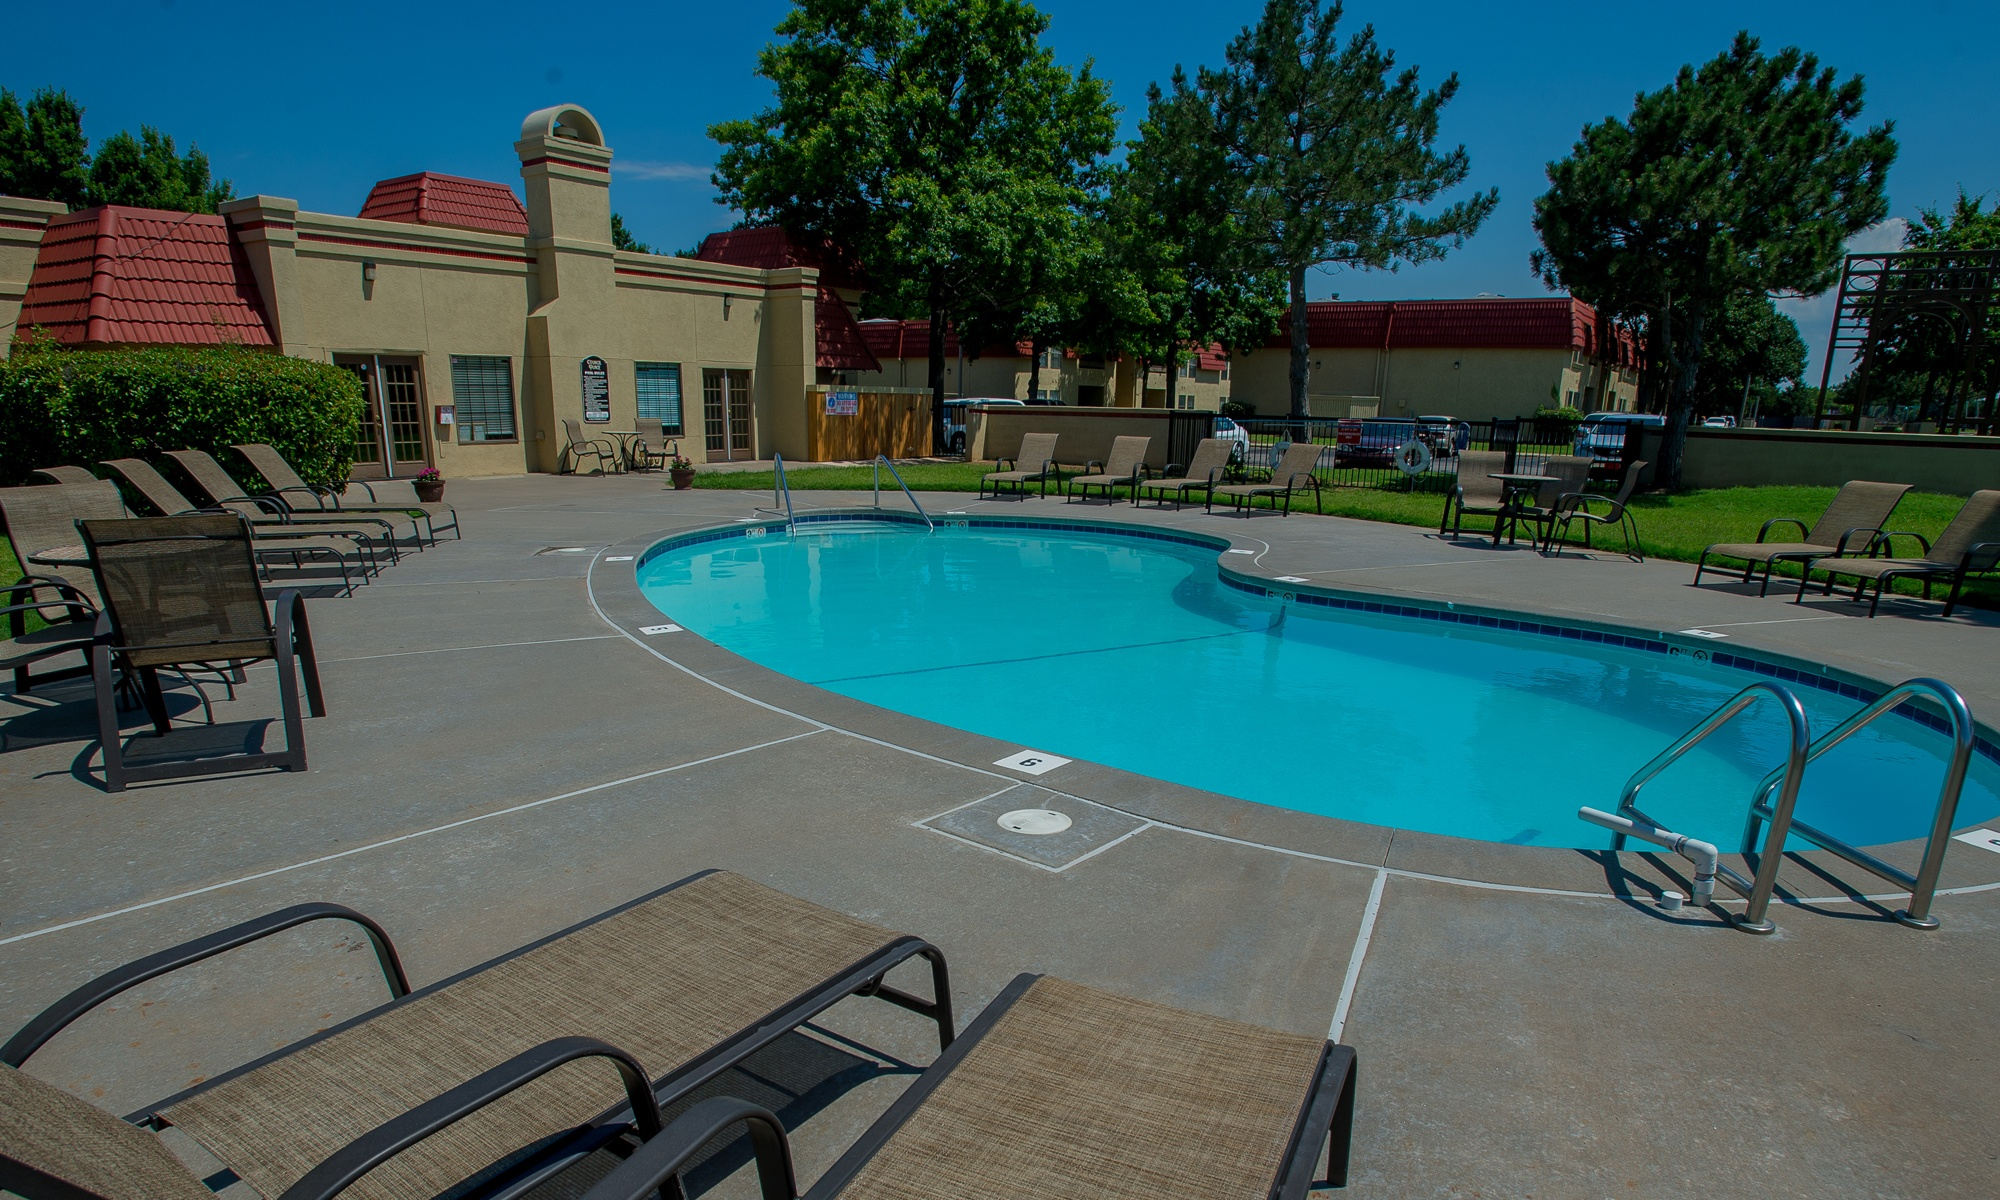 Swimming pool view at apartments in Oklahoma City, OK